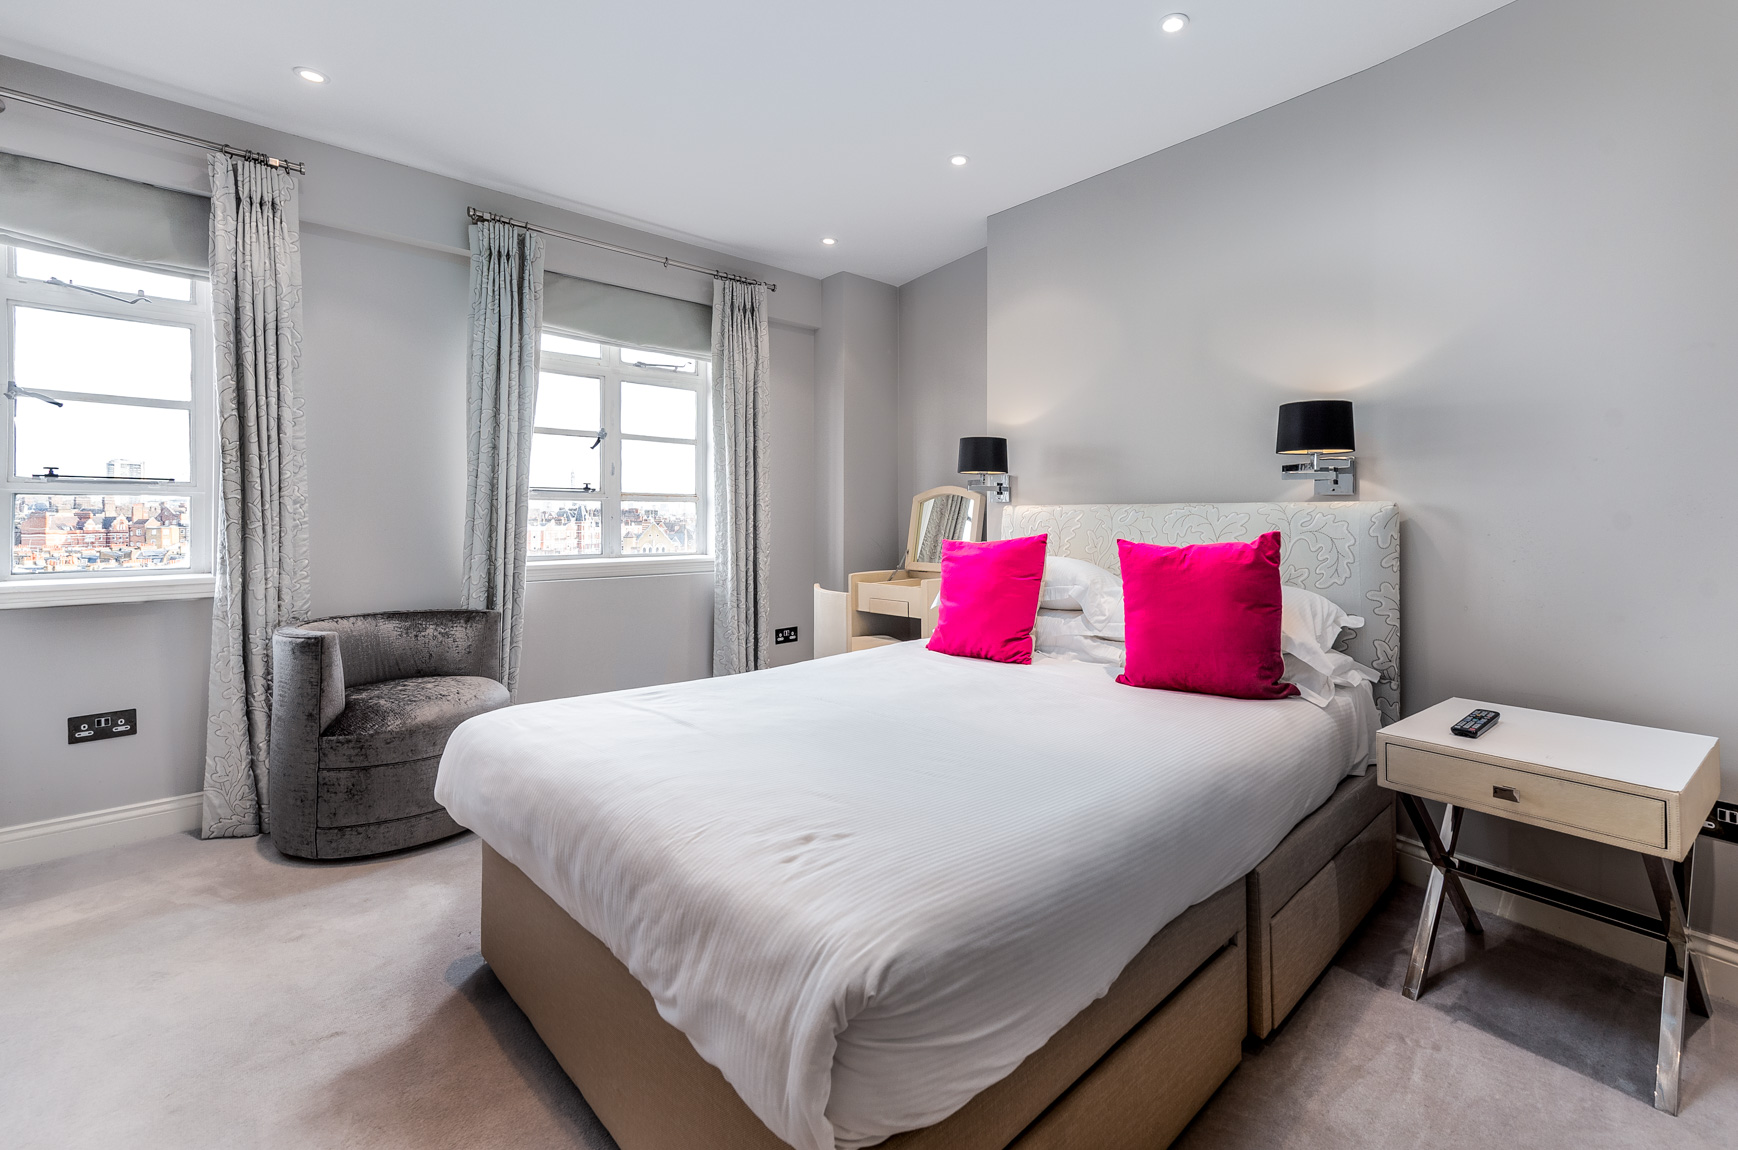 Bedroom at Nell Gwynn House Accommodation, Chelsea, London